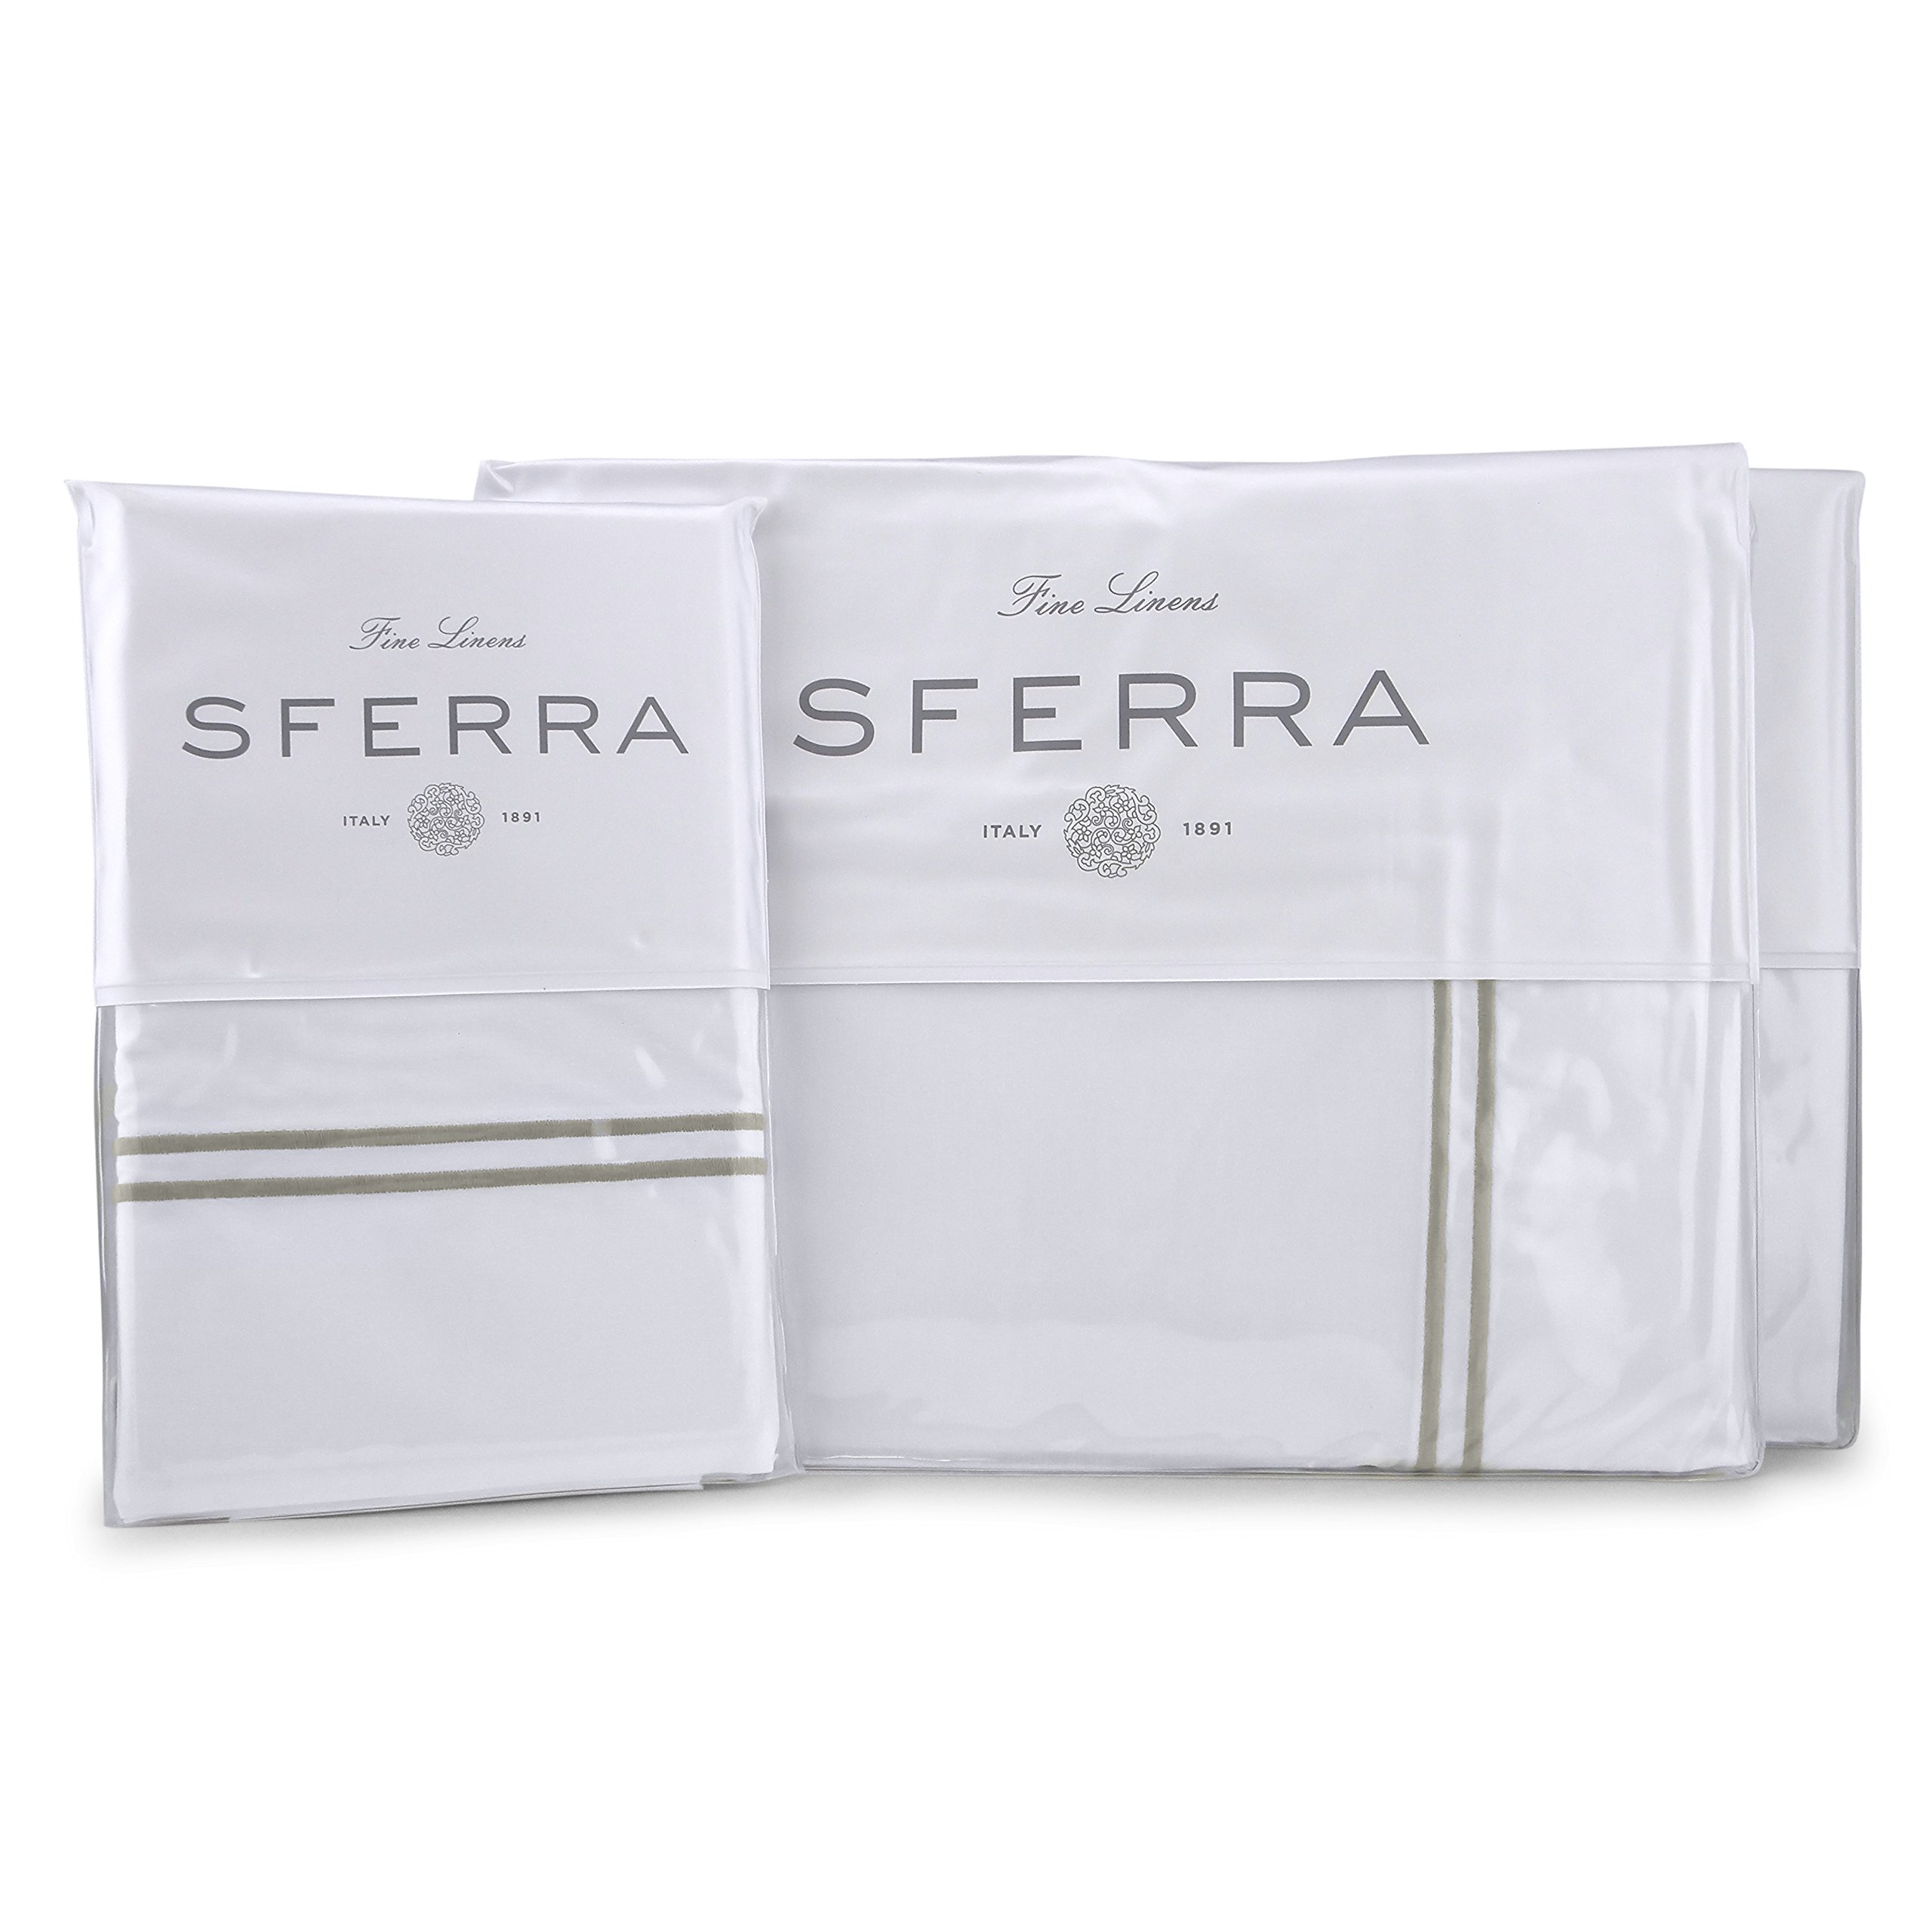 Sferra Grande Hotel Sheet Set - King - White/Grey